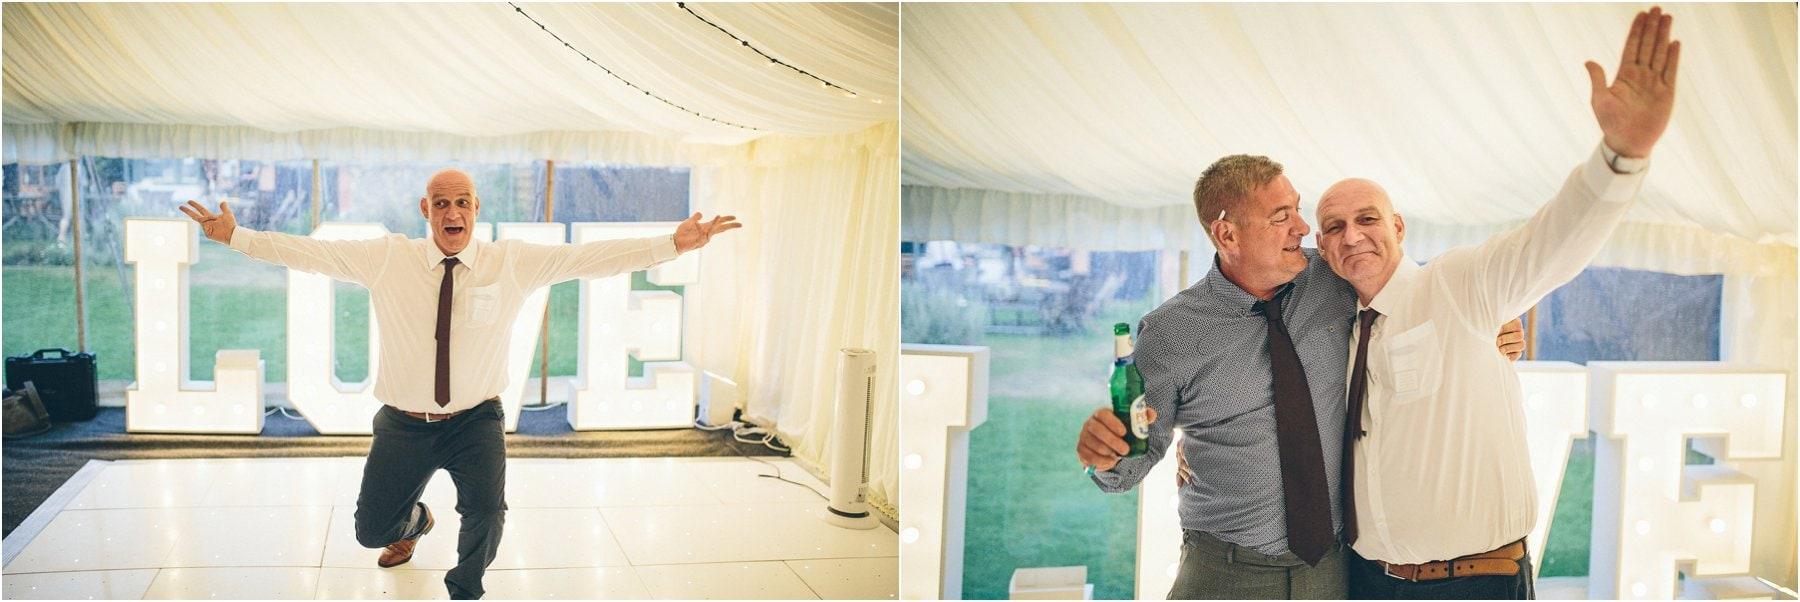 Cley_Windmill_Wedding_Photography_0152